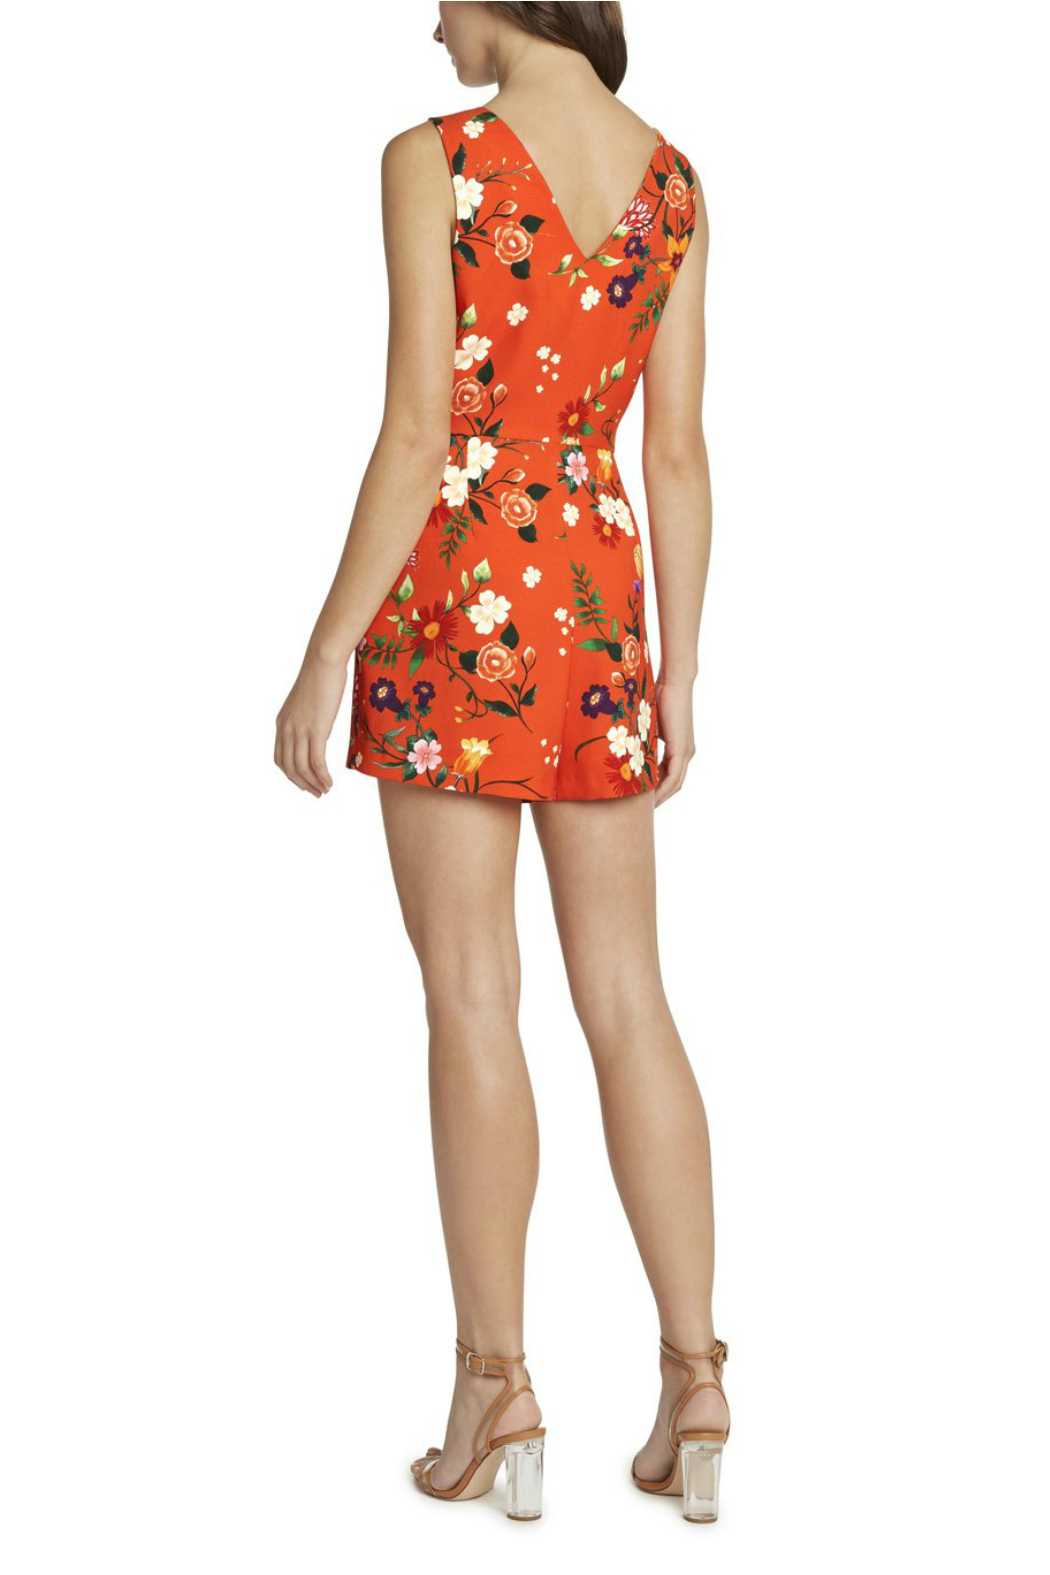 willow and clay Yara Floral Wrap Romper - Front Full Image